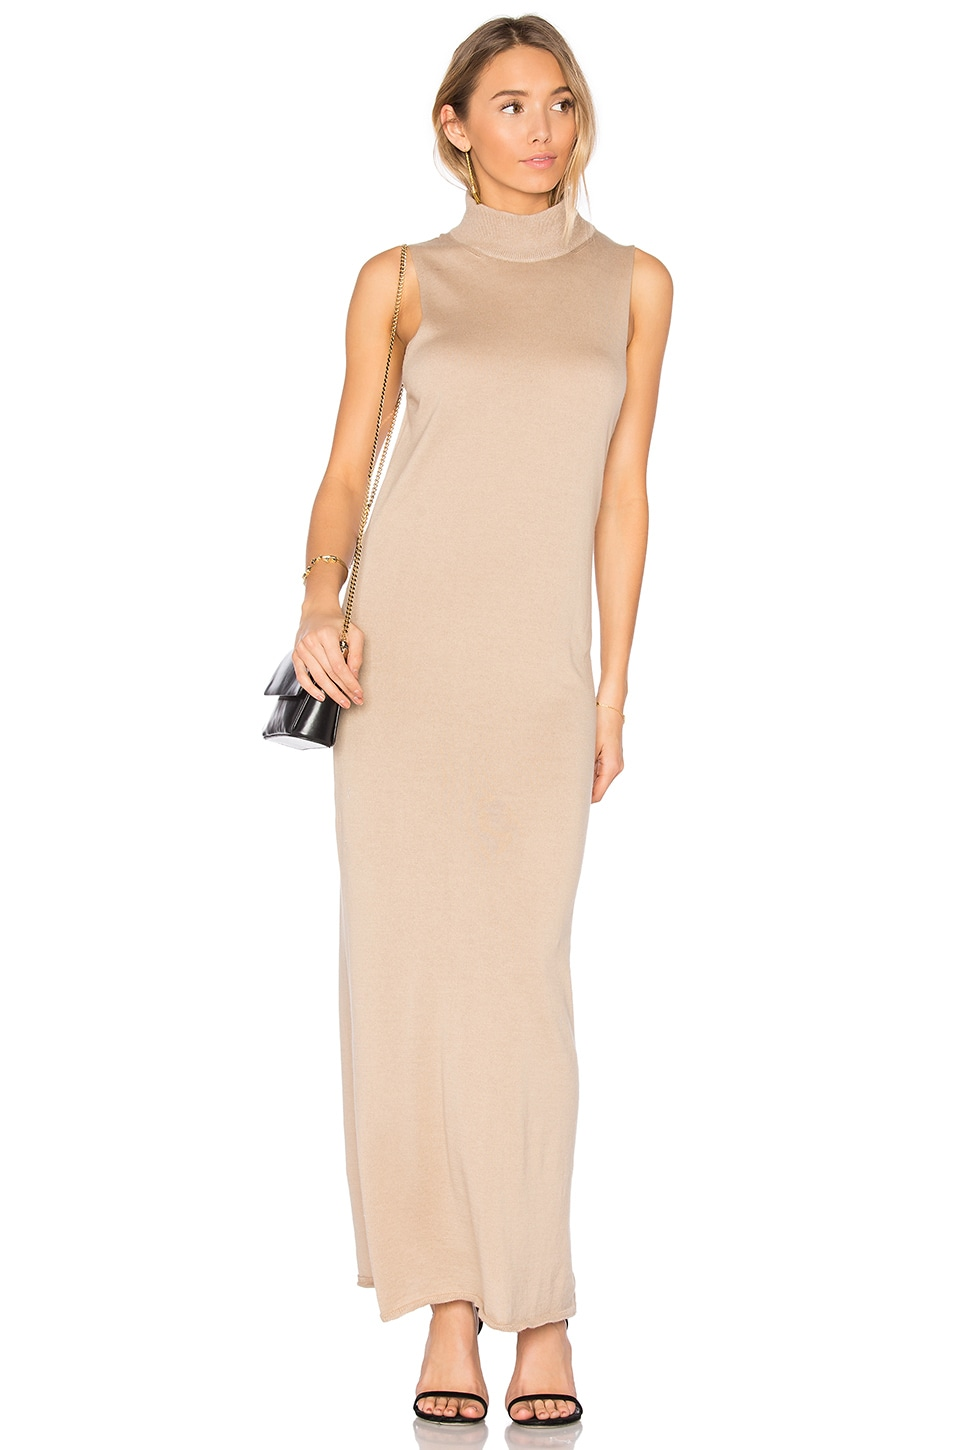 Carl Maxi Dress by Helfrich